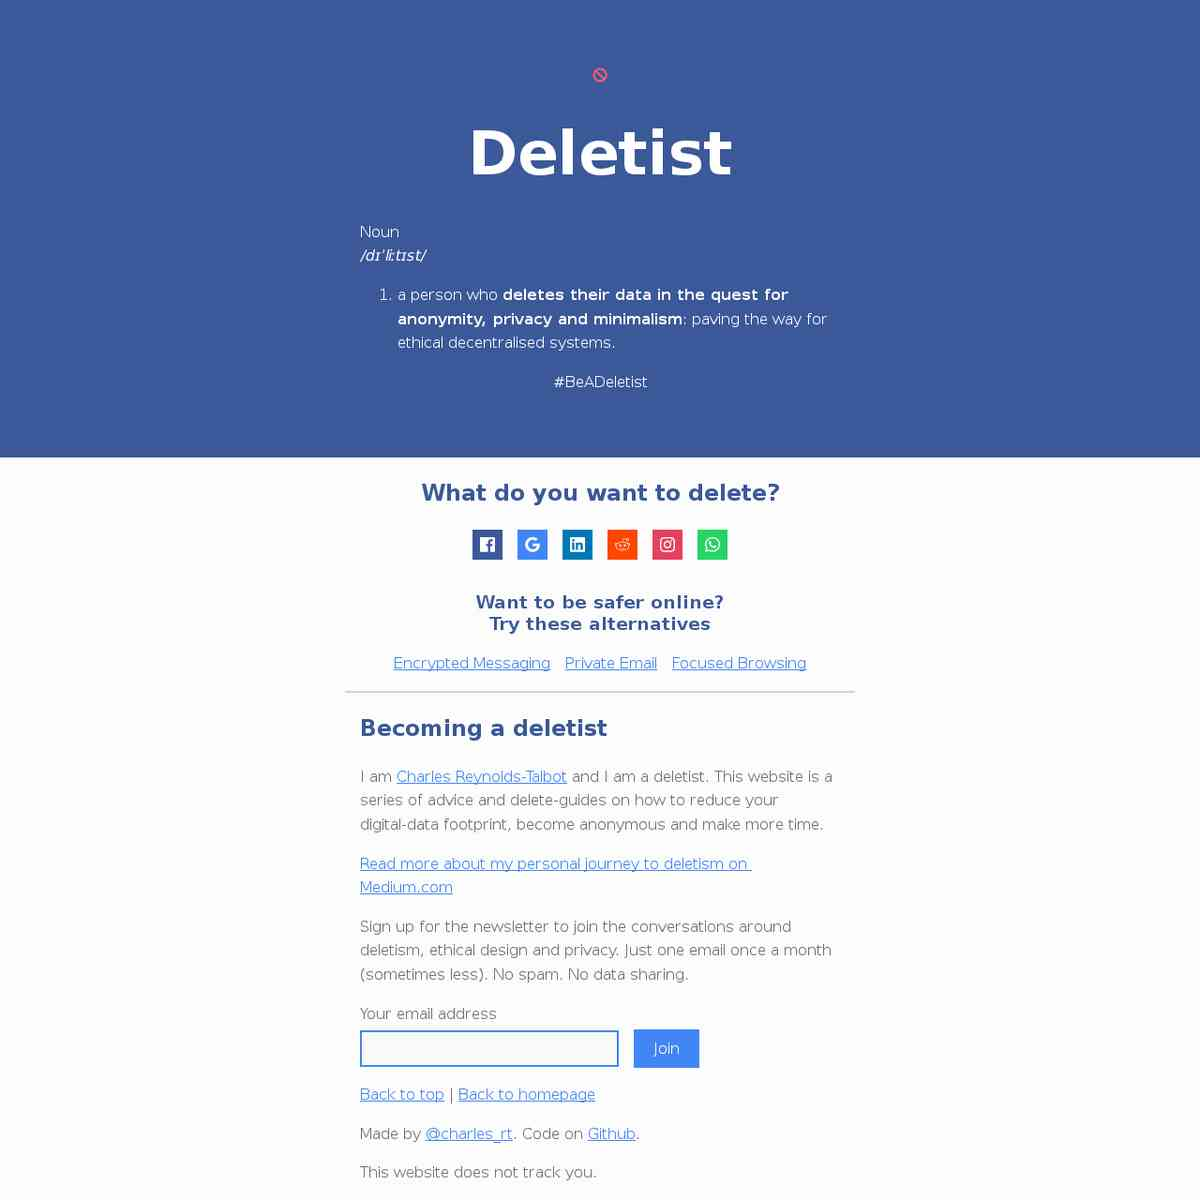 Be a Deletist